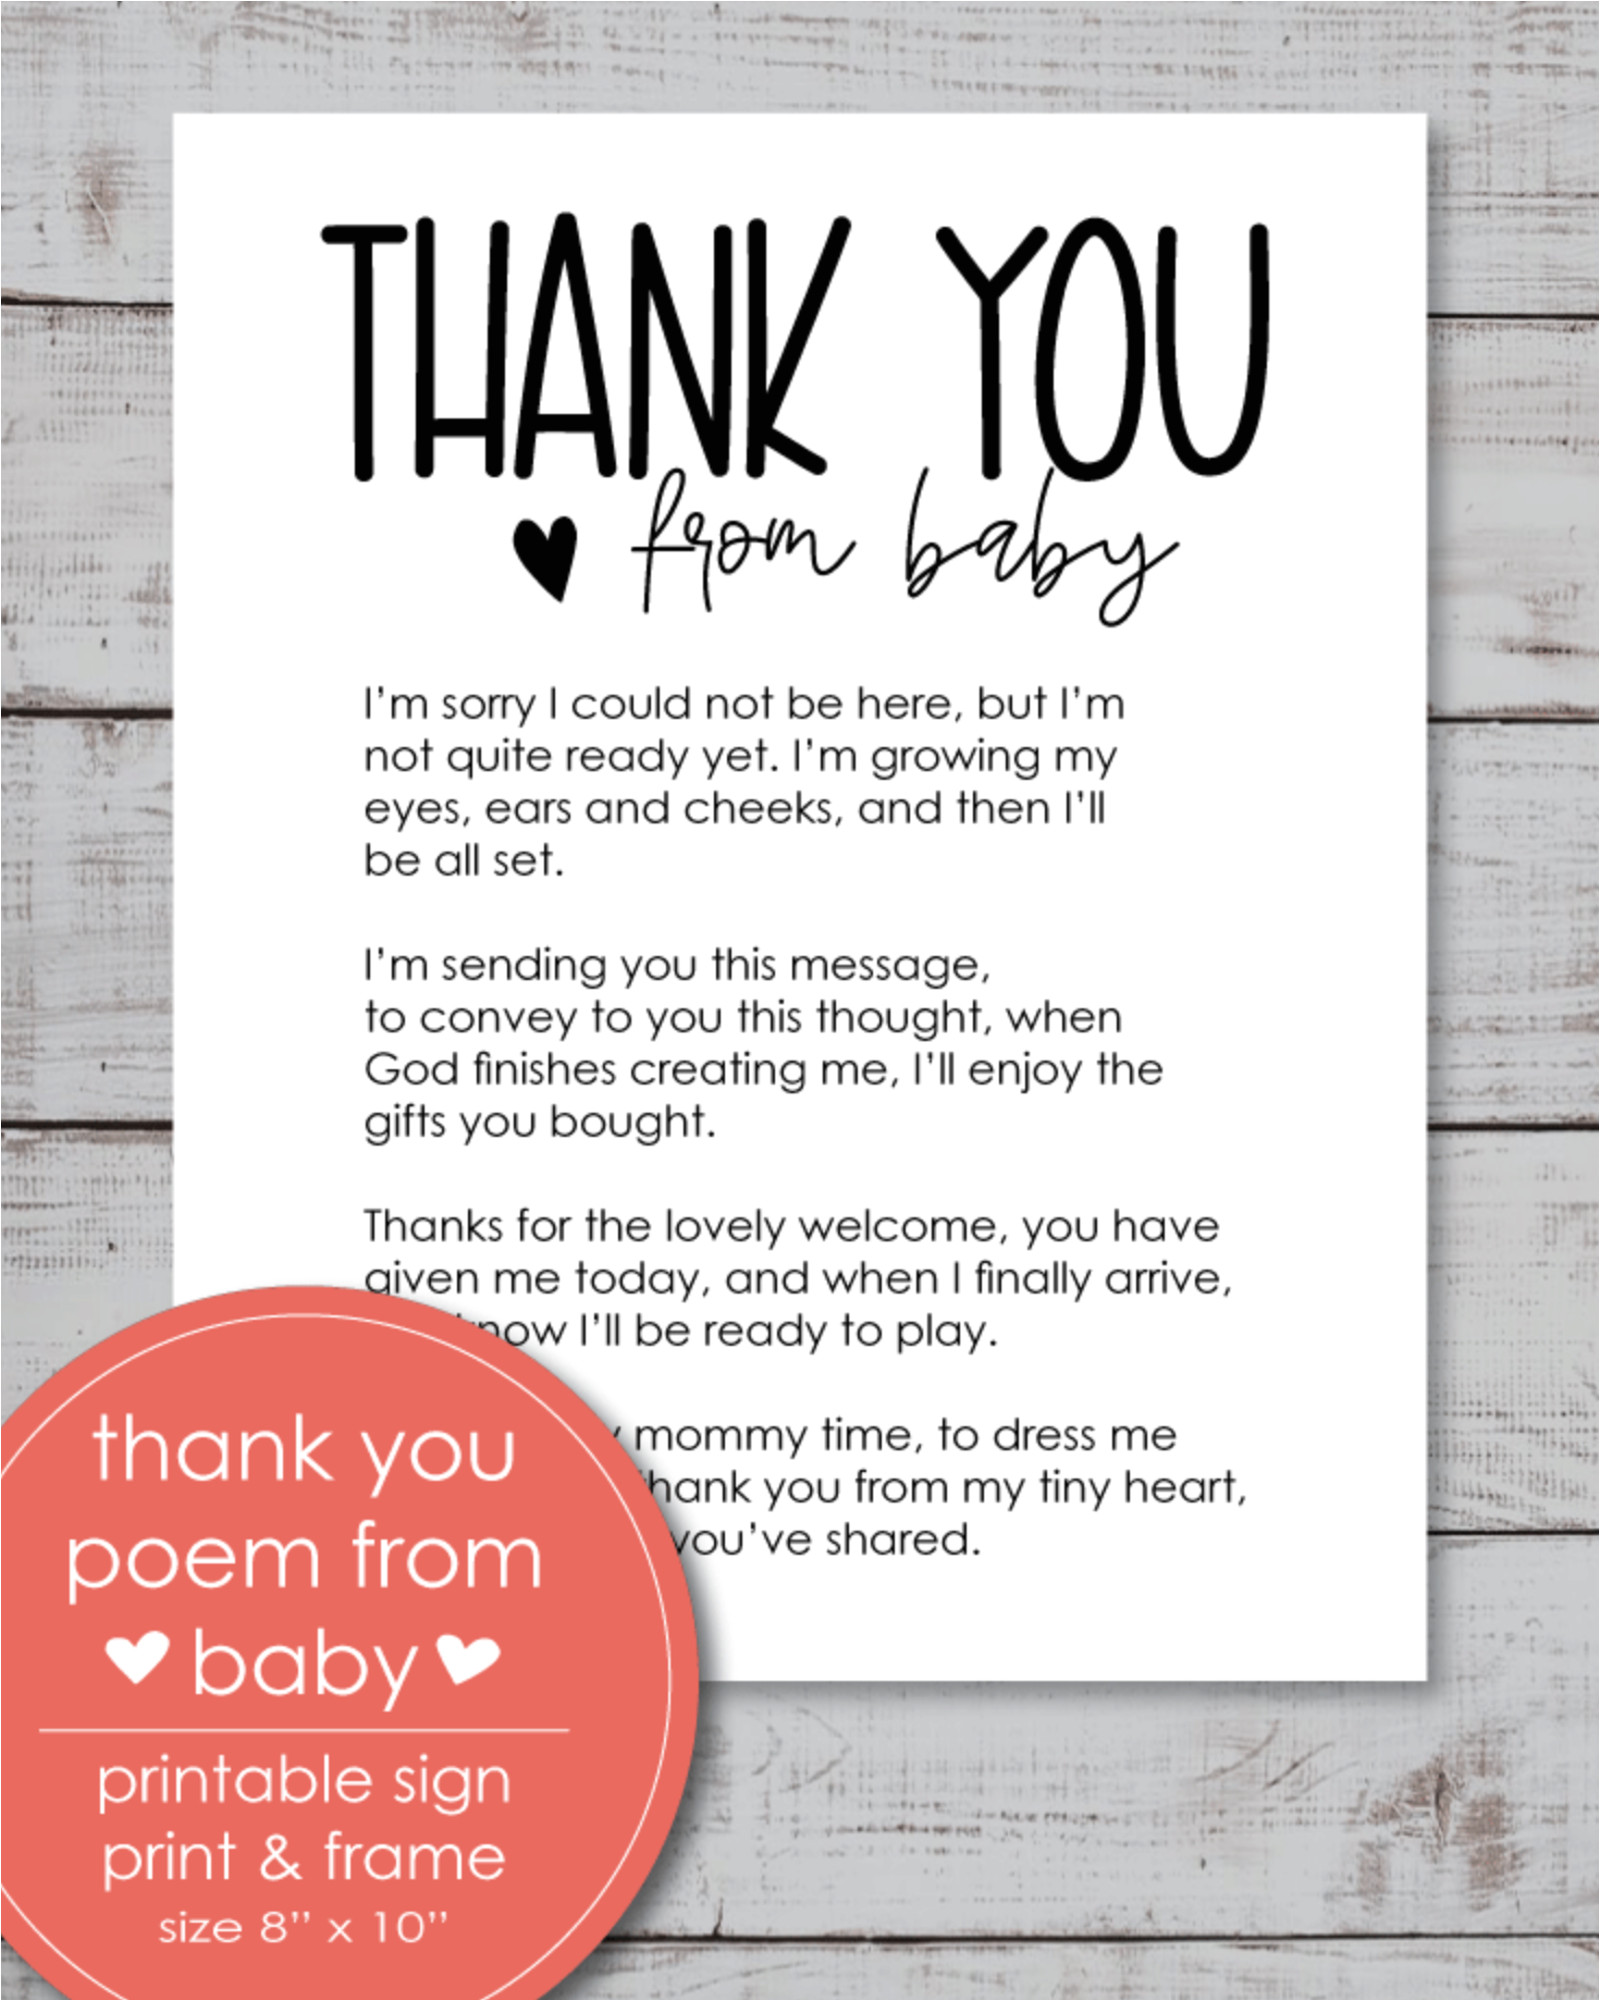 Verse for Thank You Card Printable Thank You Poem From Baby 8×10 Sign In 2020